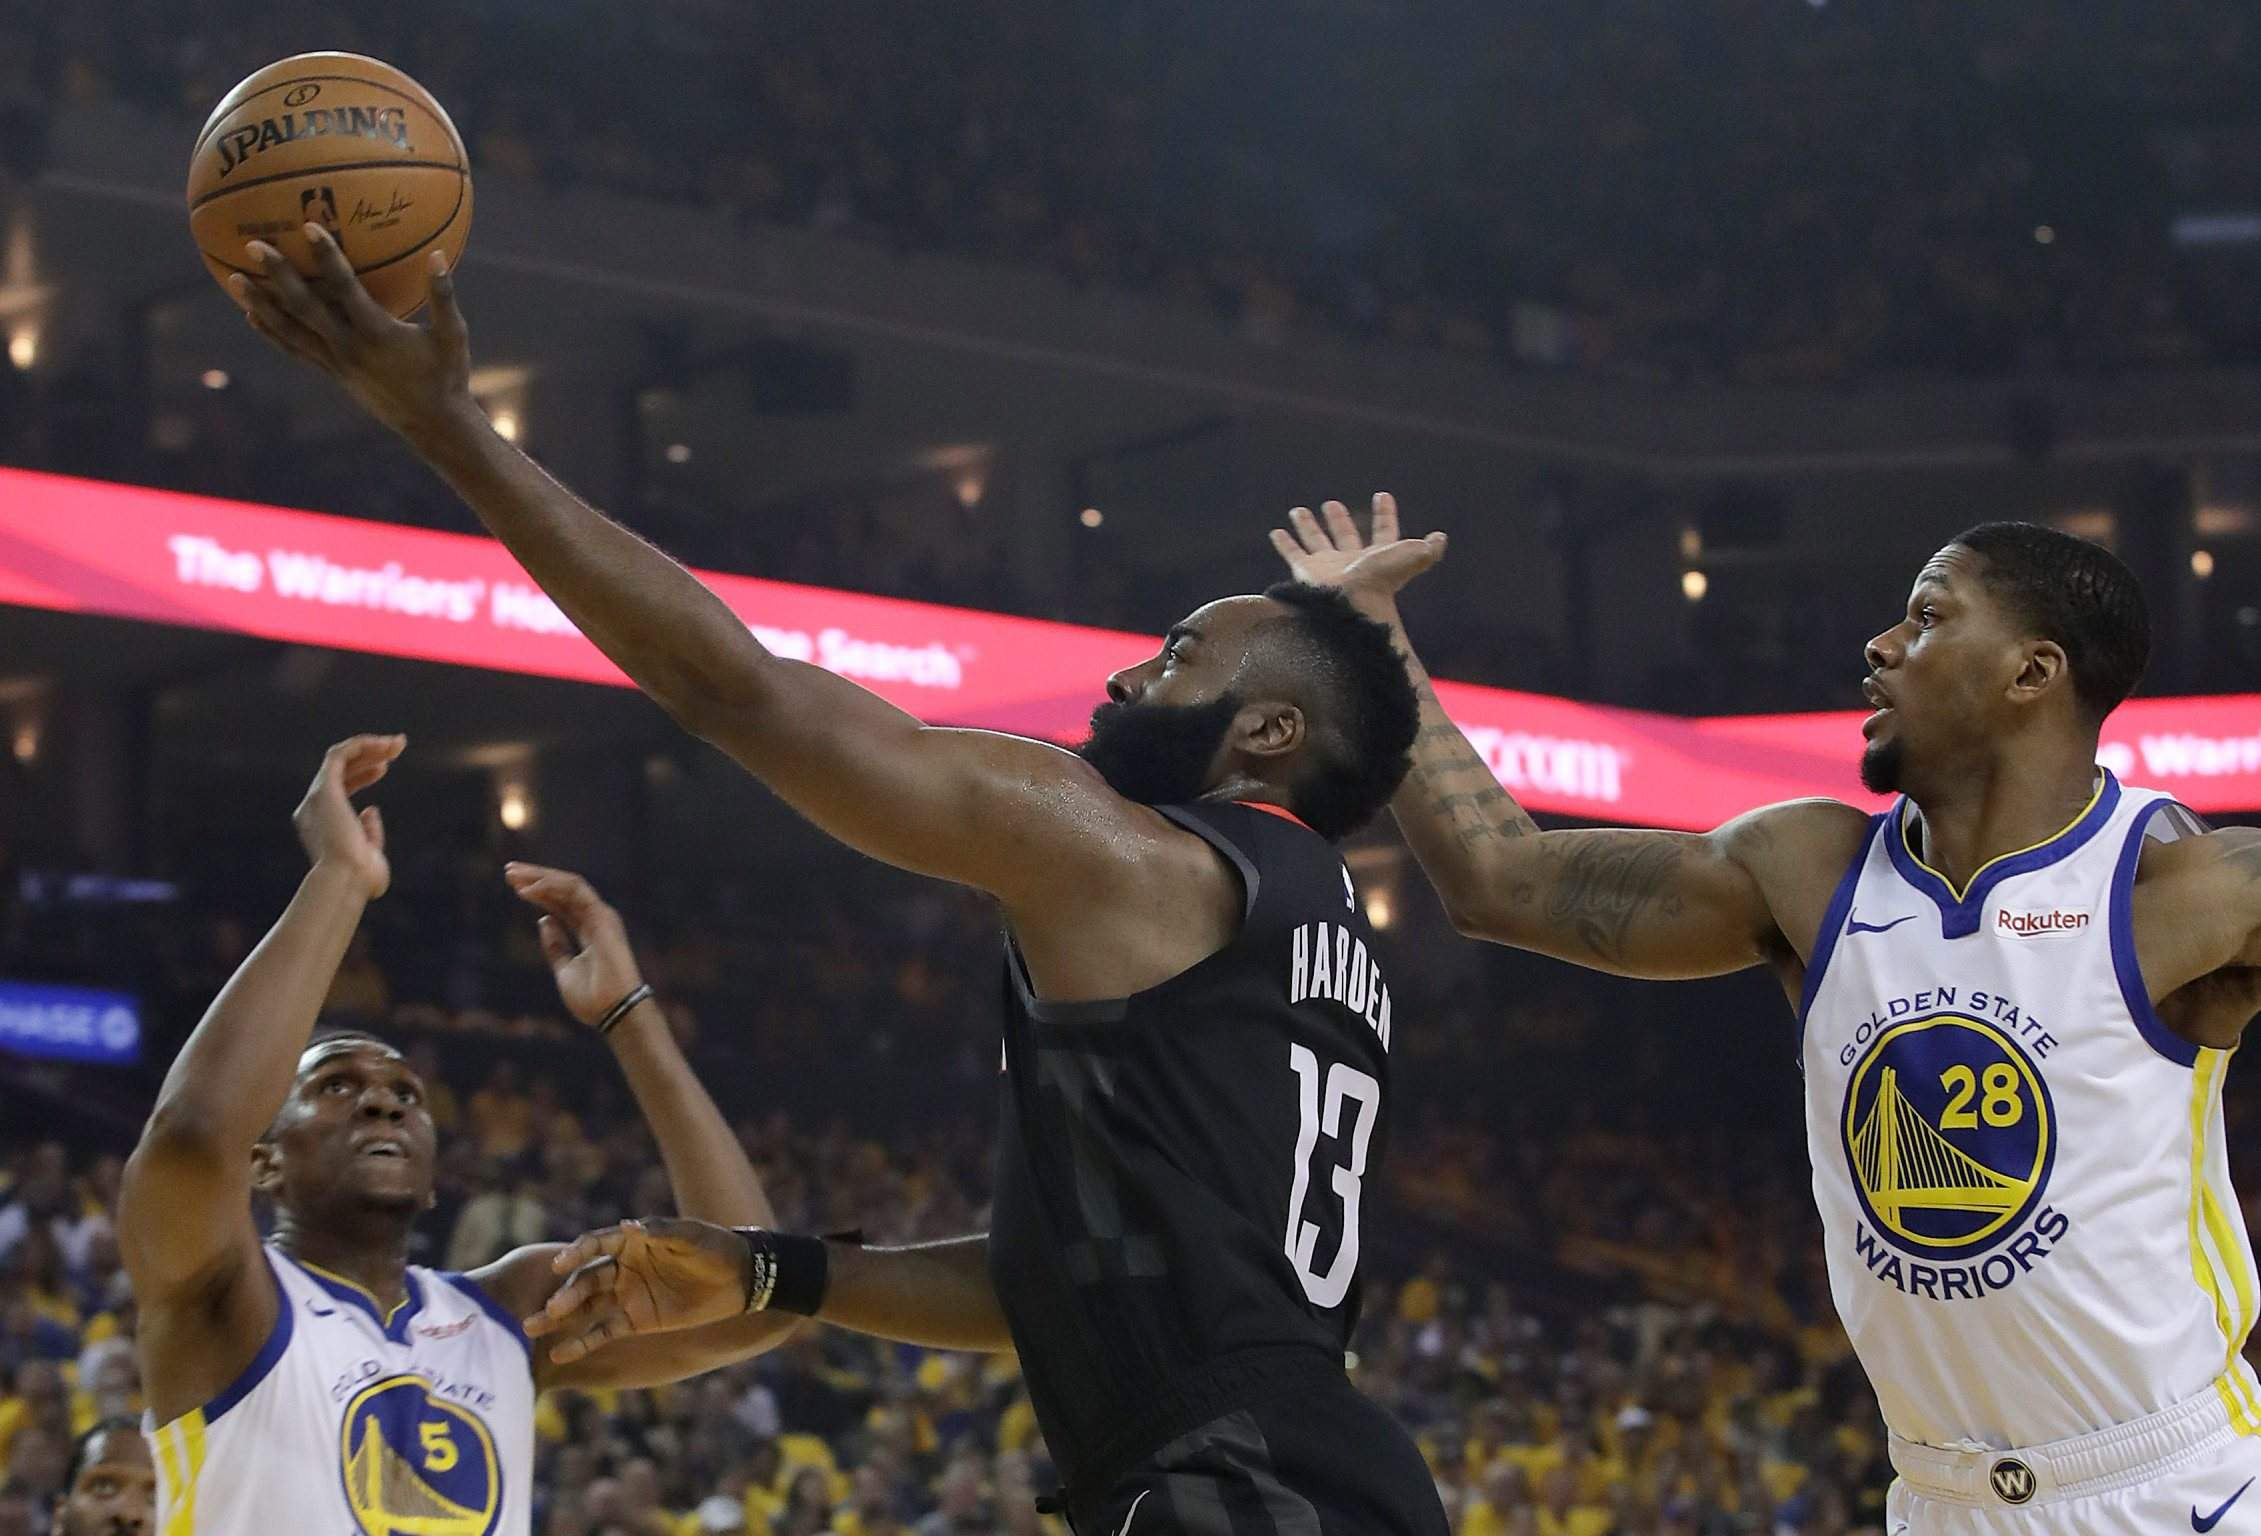 cf2d6c144671 ... guard James Harden (13) shoots between Golden State Warriors center  Kevon Looney (5) and forward Alfonzo McKinnie (28) during the first half of Game  1 ...